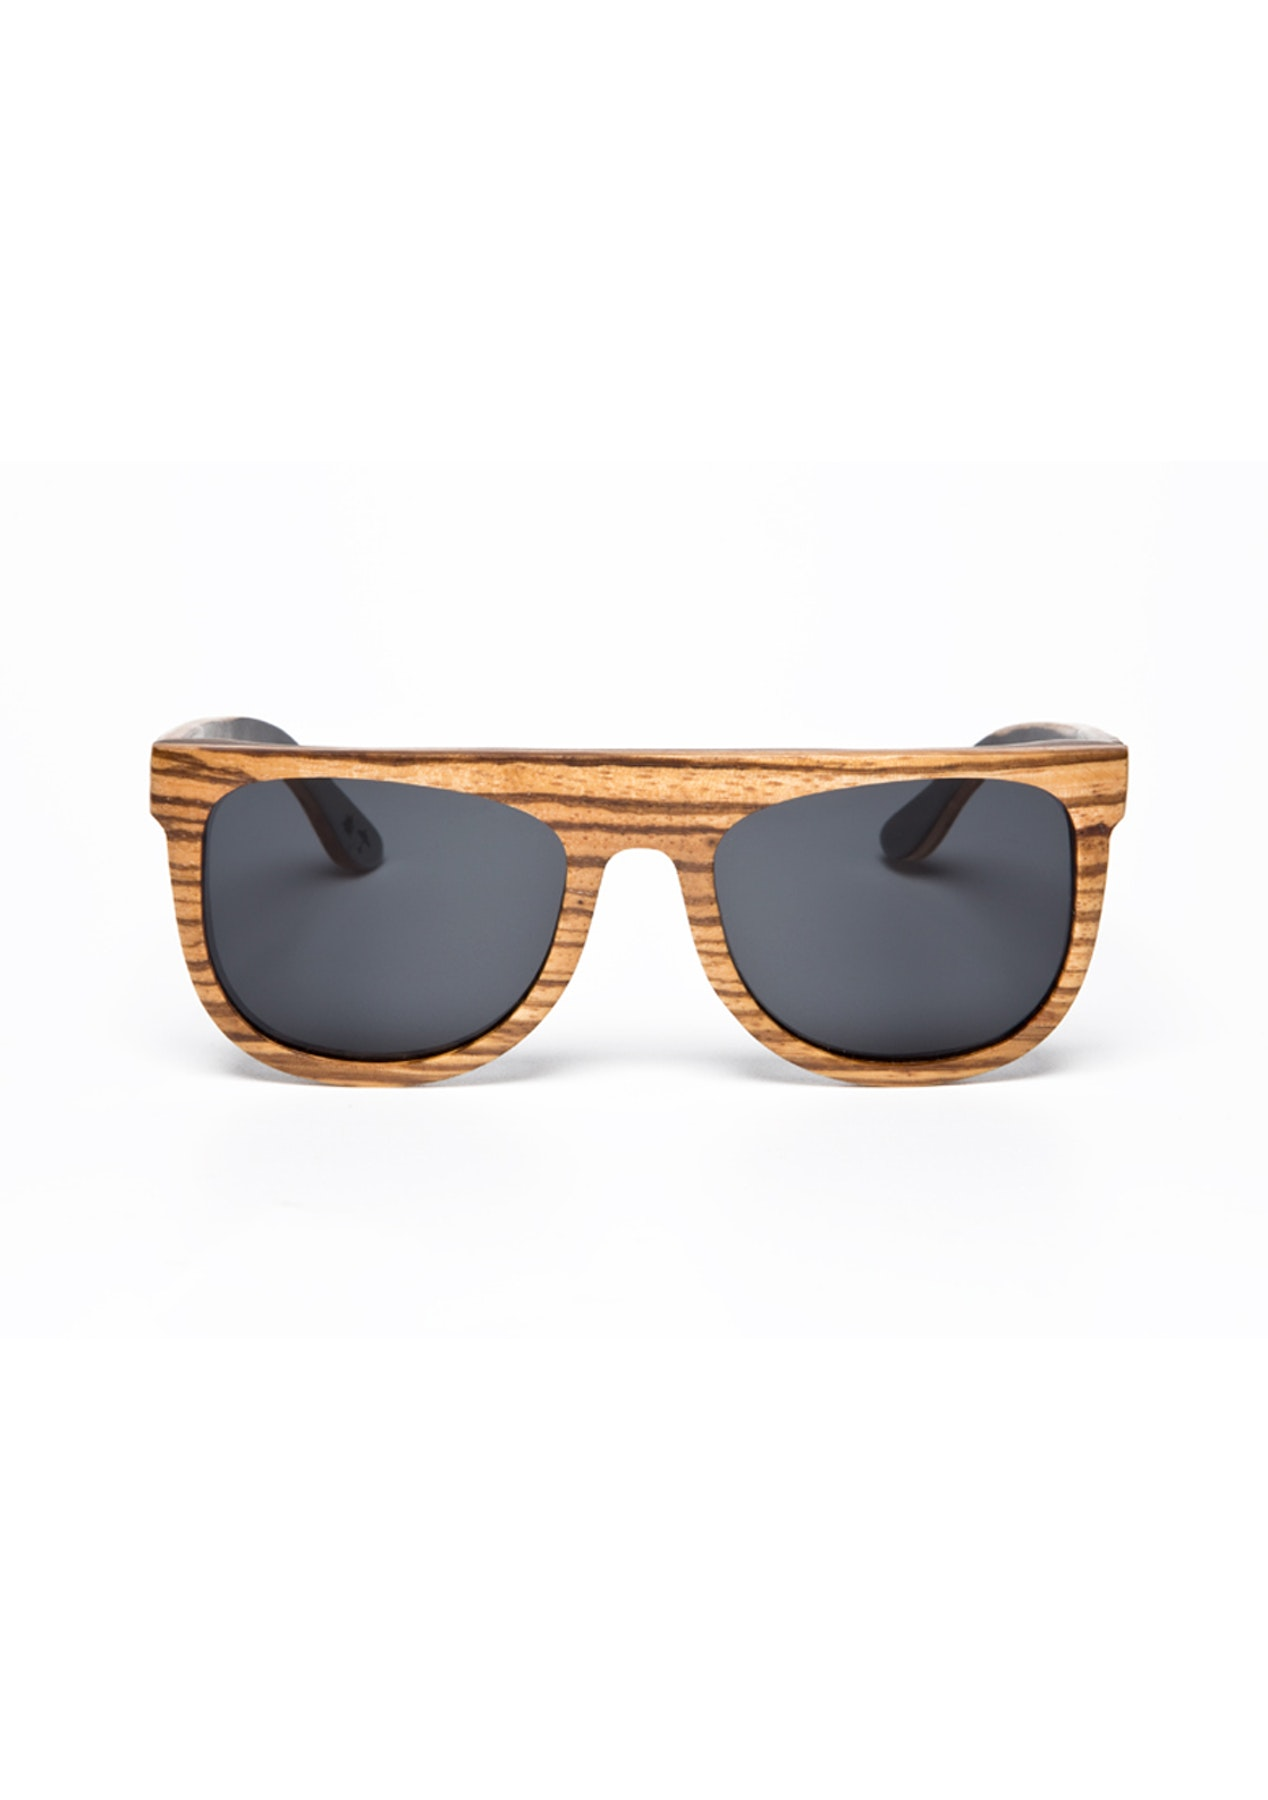 1068802b11f Under The Sun - The Boston - Zebra Beech Ebony Sunglasses - Gifts for Him -  Onceit